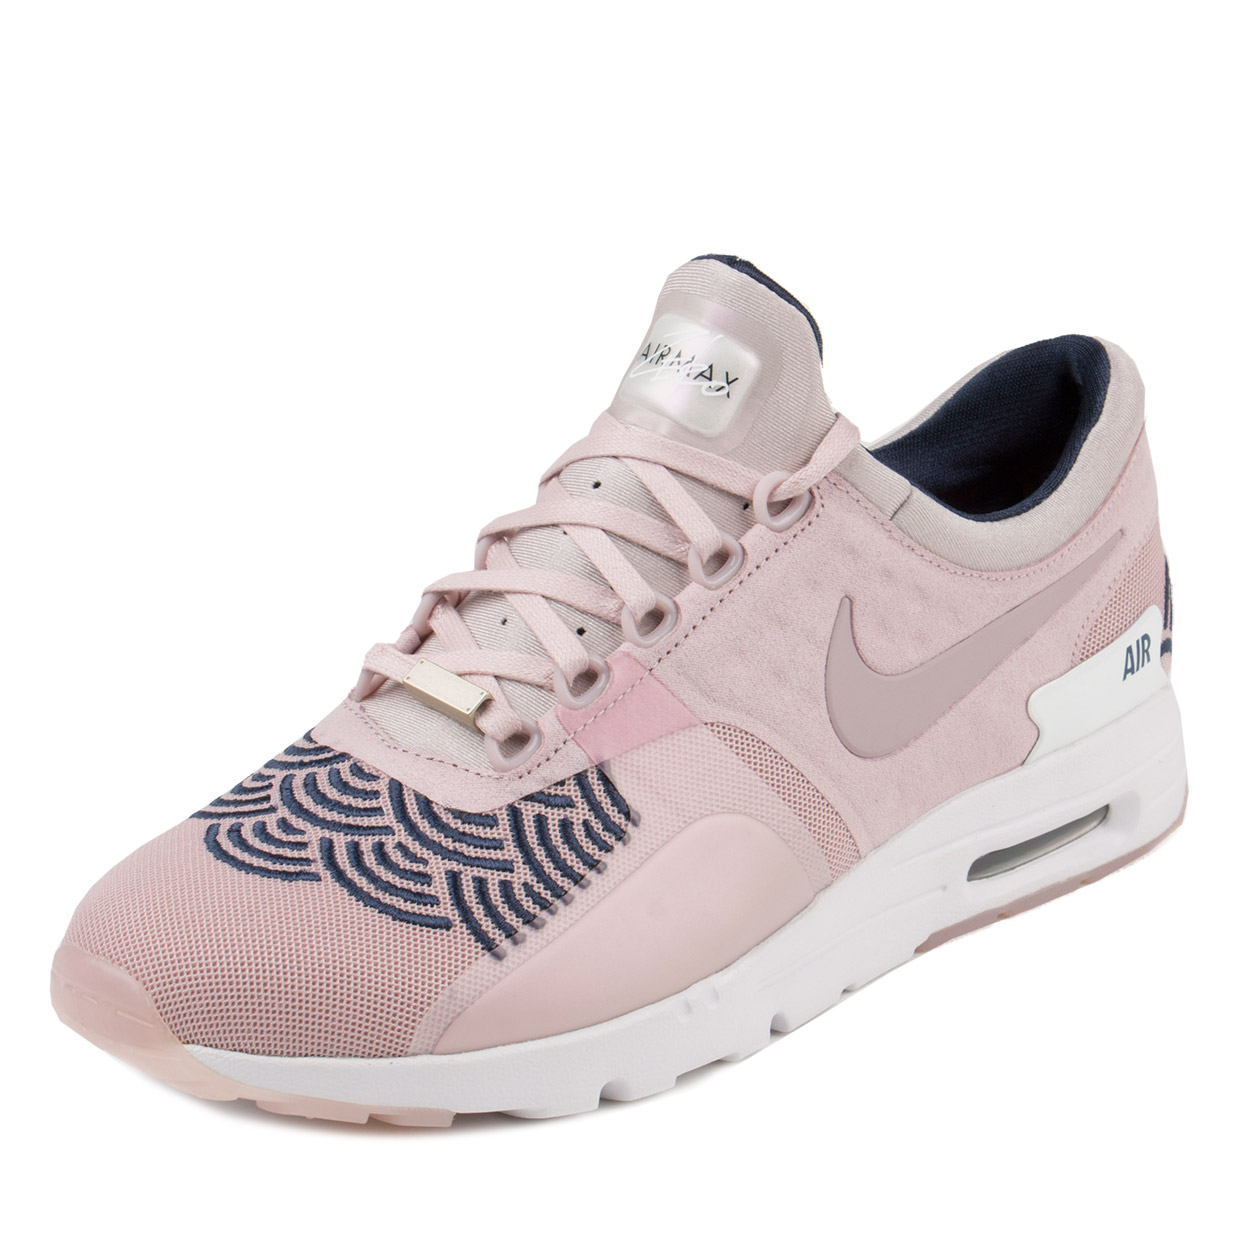 online store 4cea6 55286 ... promo code for nike womens w air max zero lotc qs champagne pink  midnight navy 847125